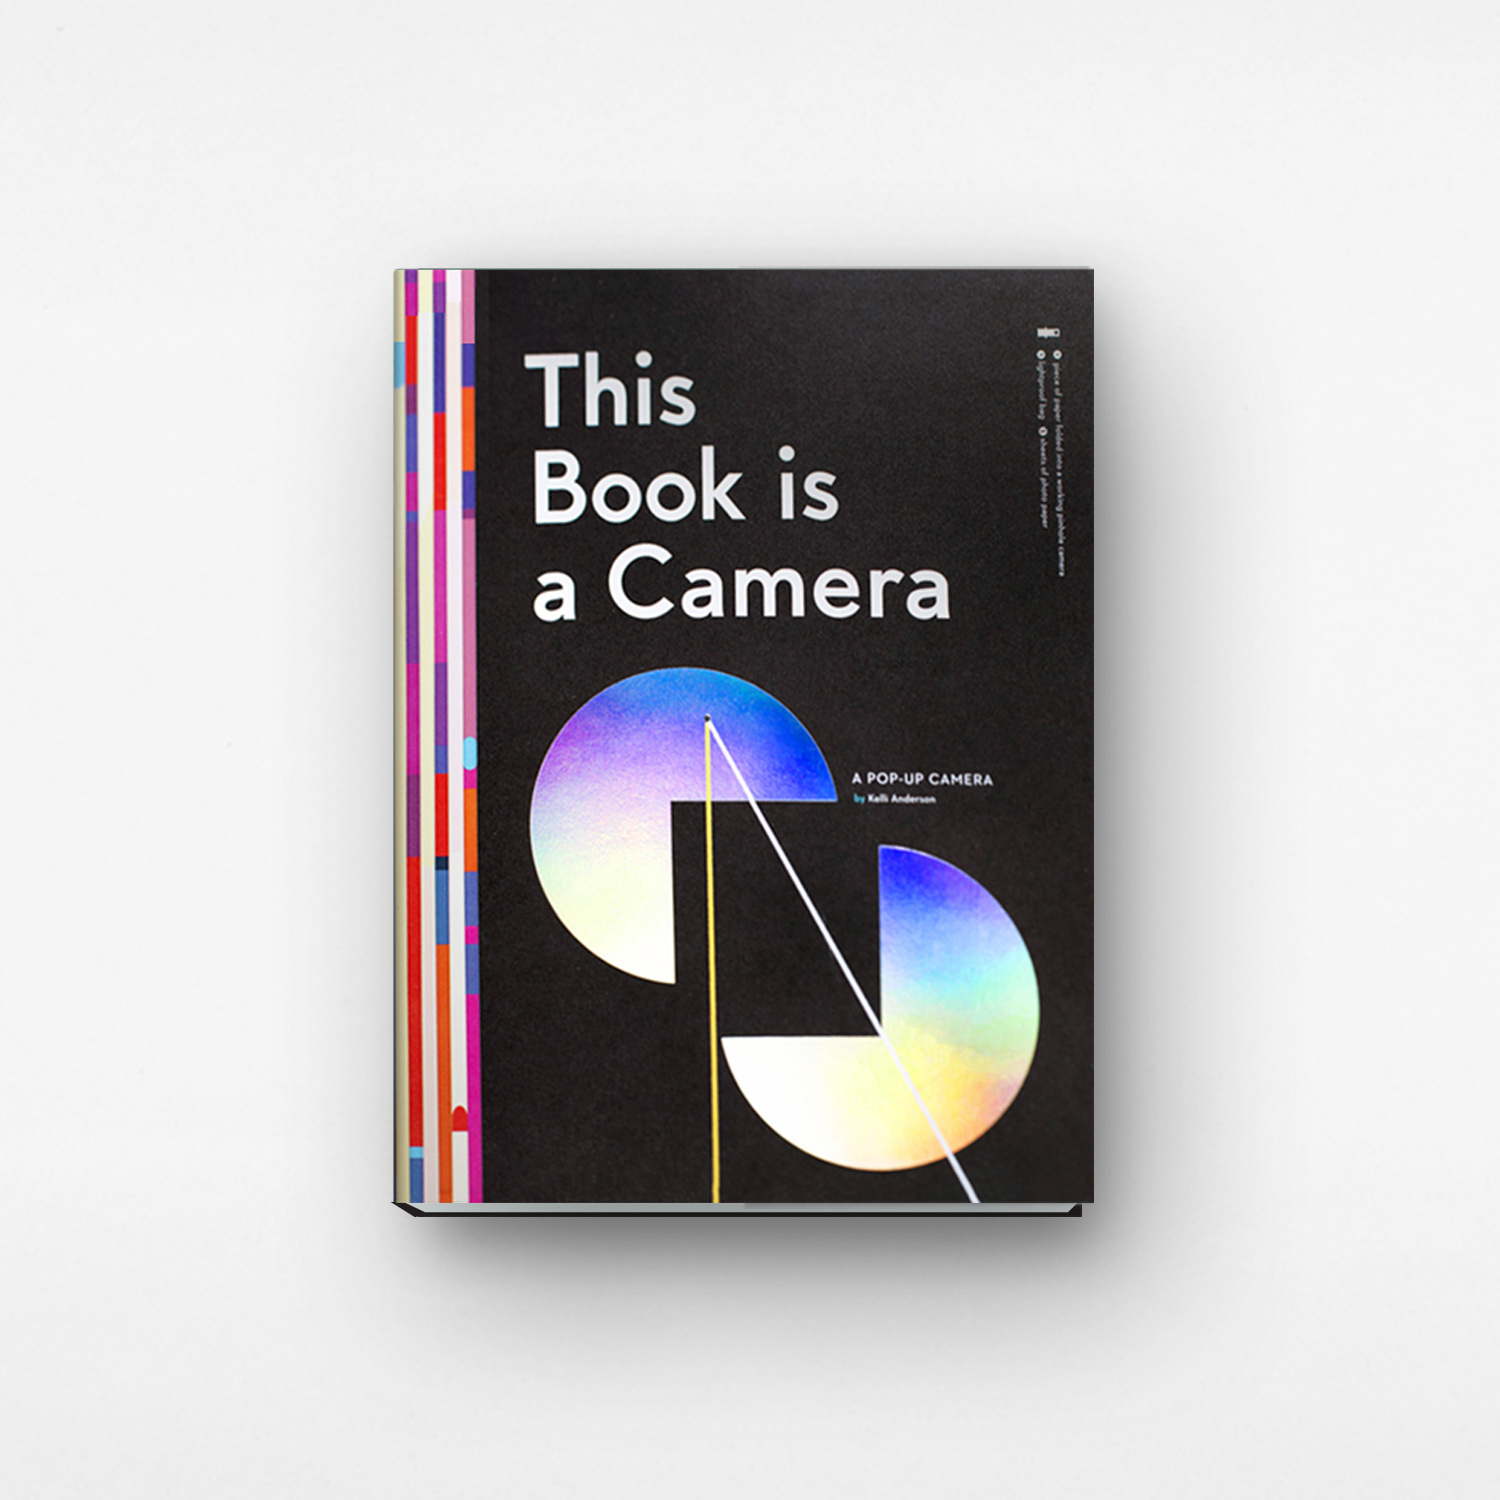 This Book Is A Camera designed by Kelli Anderson